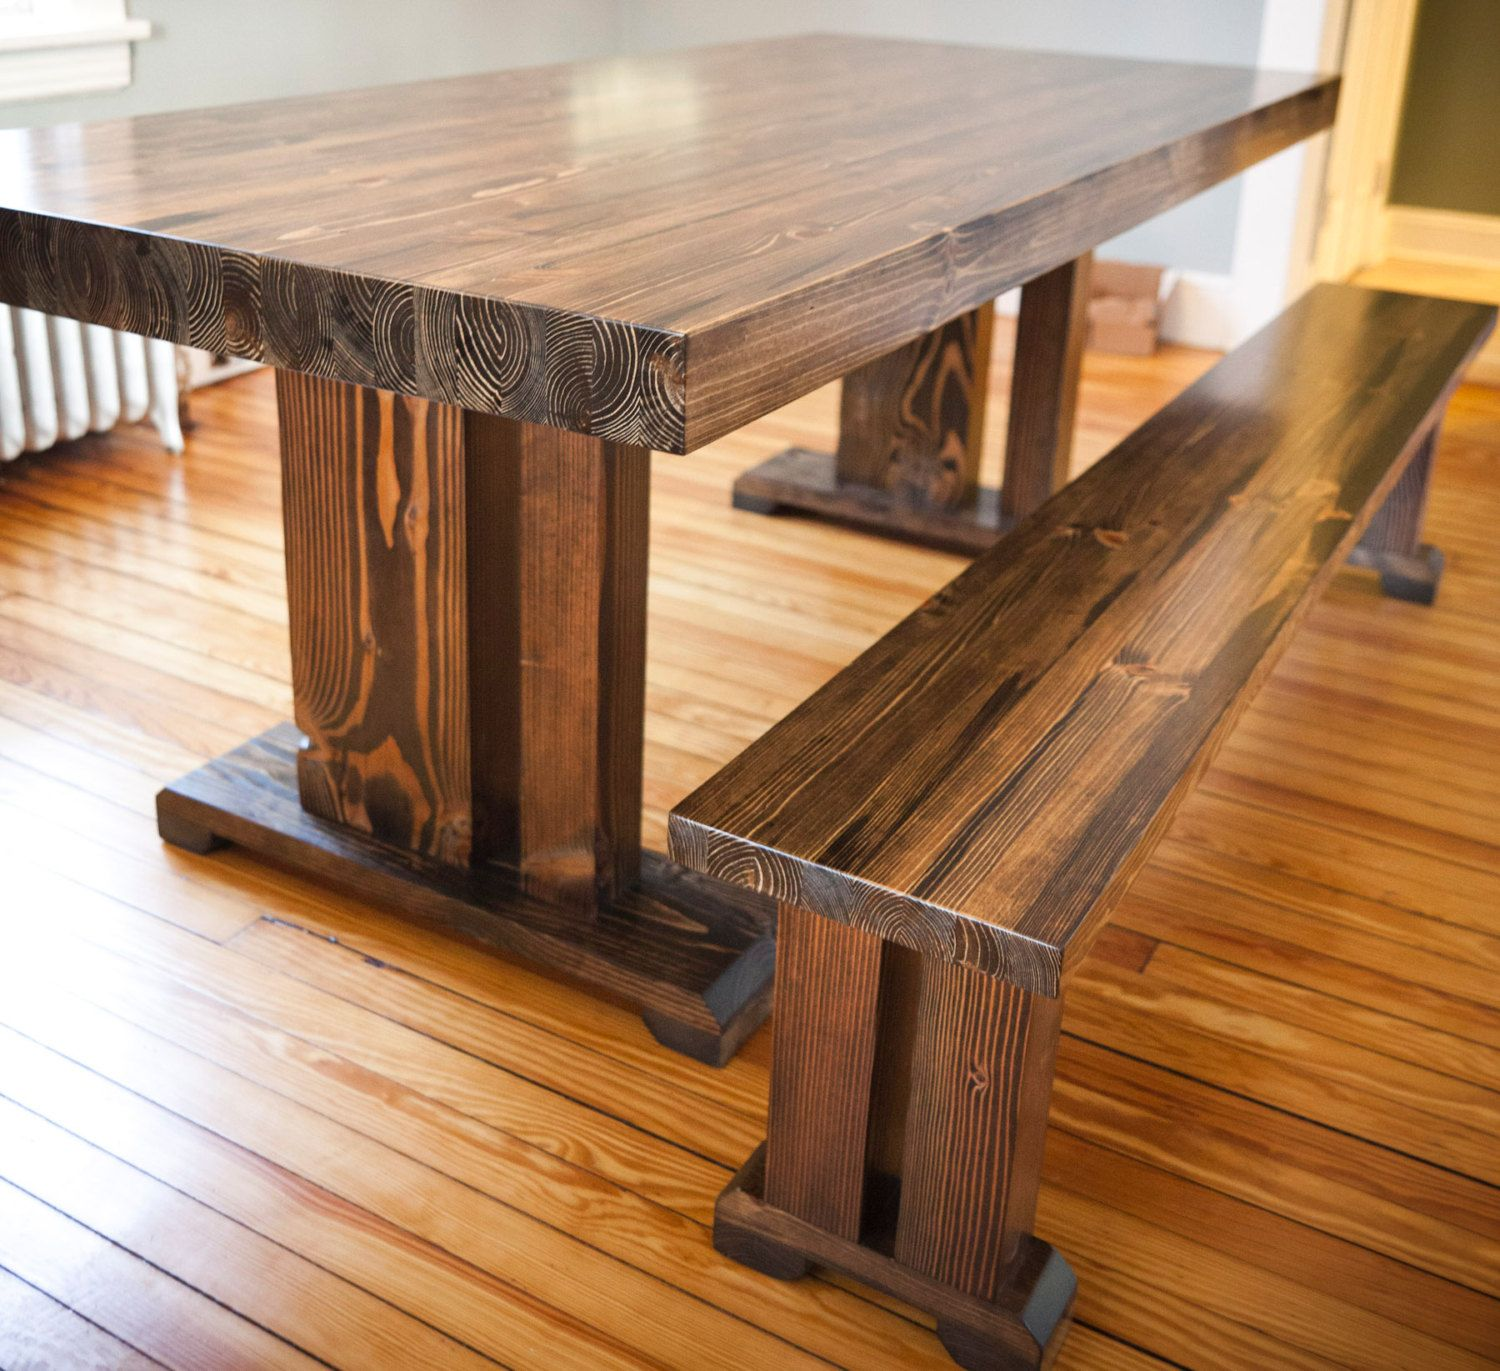 Recondition A Butcher Block Tables Idea In 2020 Butcher Block Dining Table Farmhouse Dining Table Dining Table